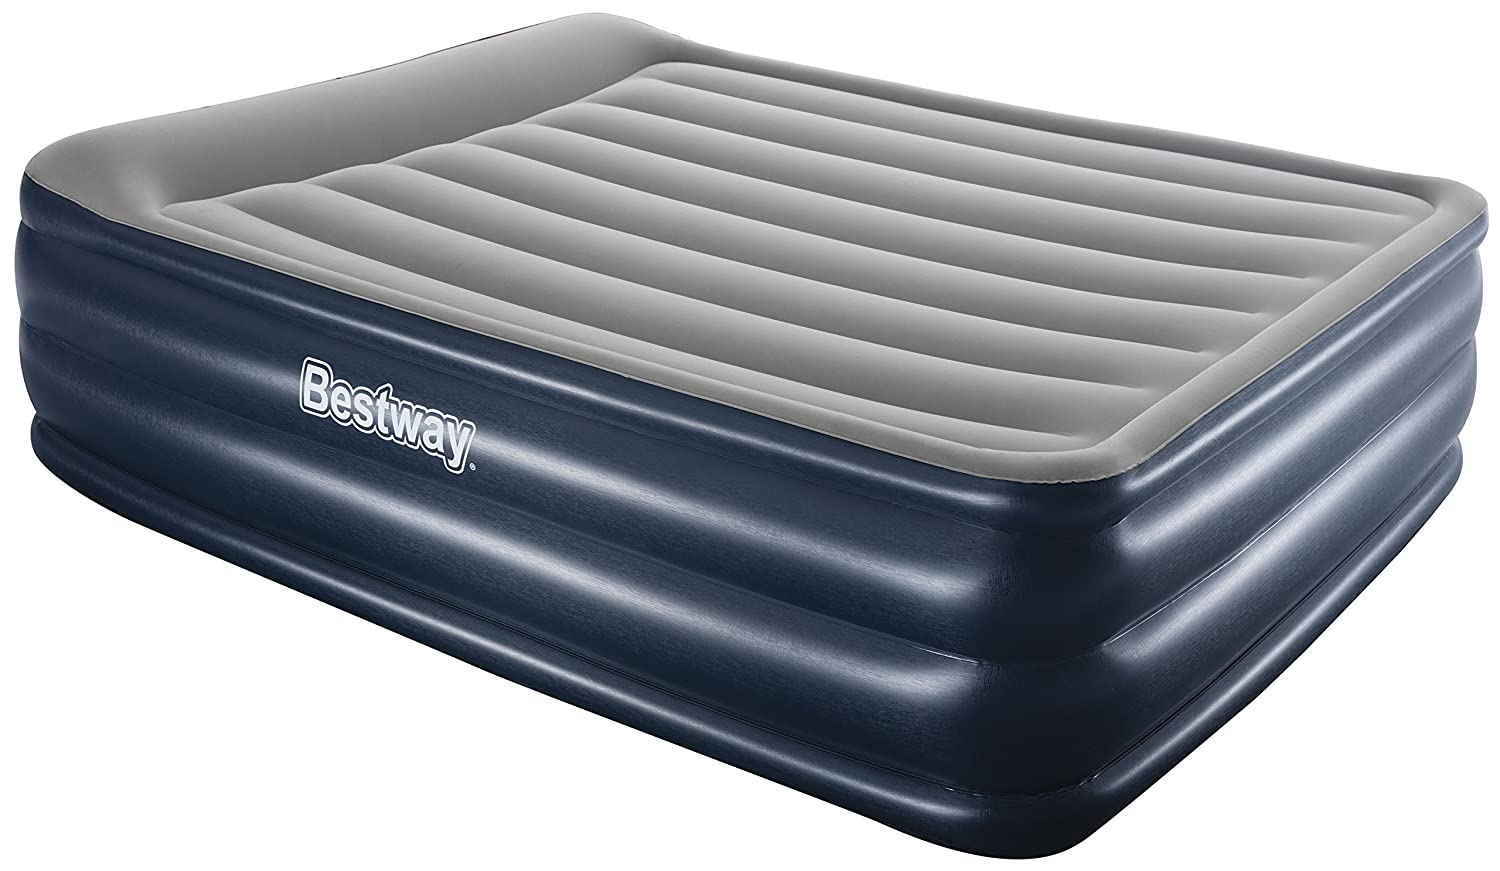 Bestway Airbeds Flocked Cornerstone Quick Inflation Indoor Air Mattress with Built-In Pump/Pillow and Travel Bag, Blue, Queen BW67528